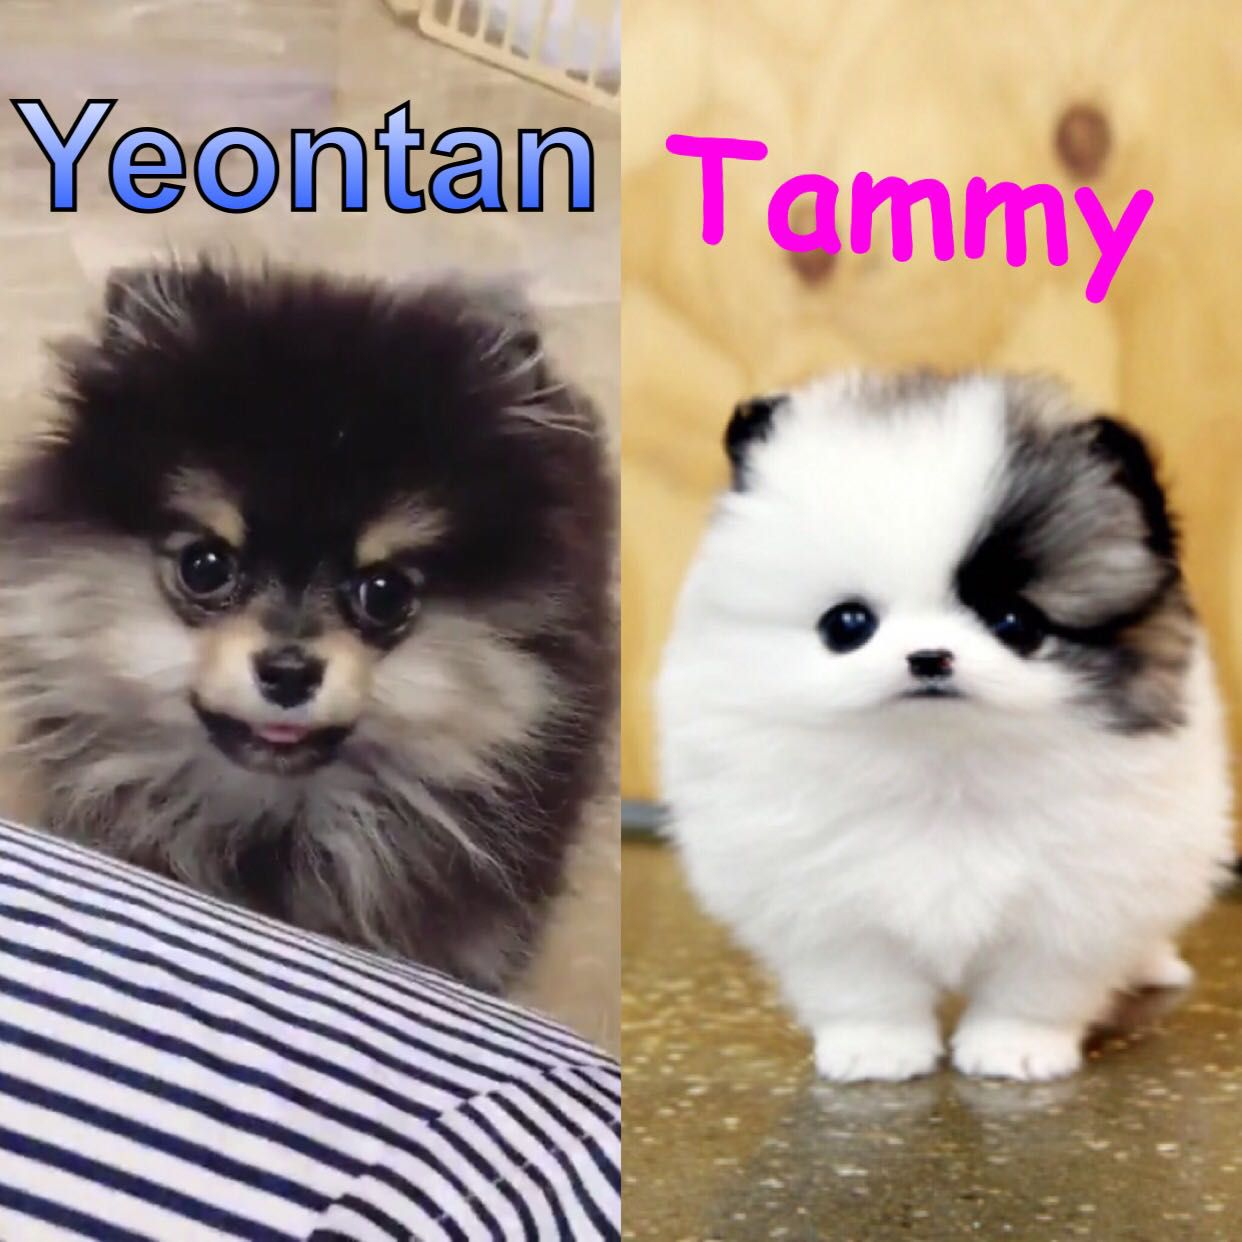 Yeontan's Little Sister - Meeting Them - Wattpad